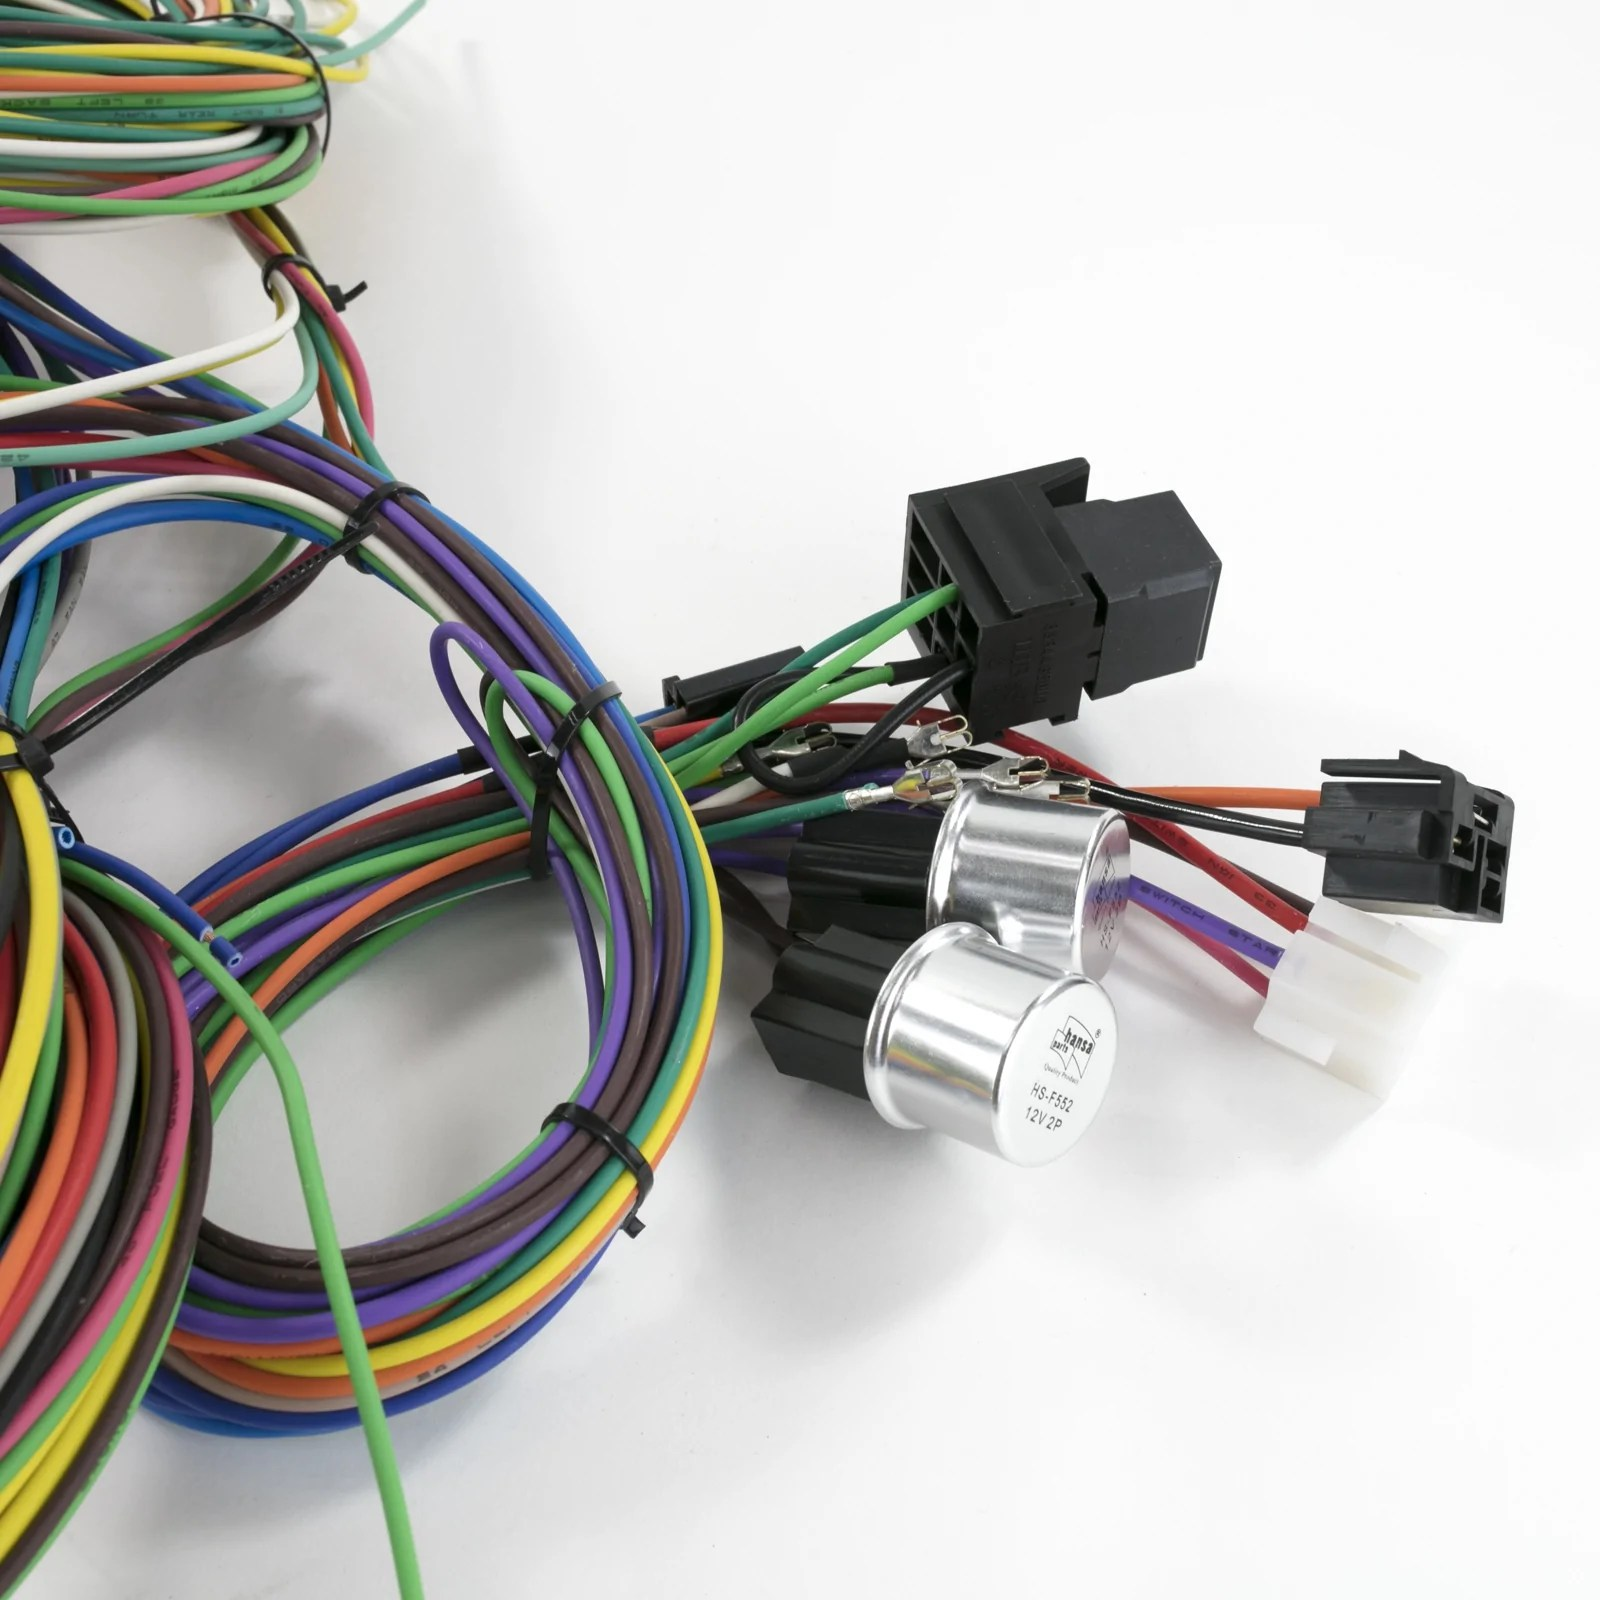 hight resolution of wiring harness universal 240z 260z 280z 510 z car depot 280z new wiring harness 280z wiring harness